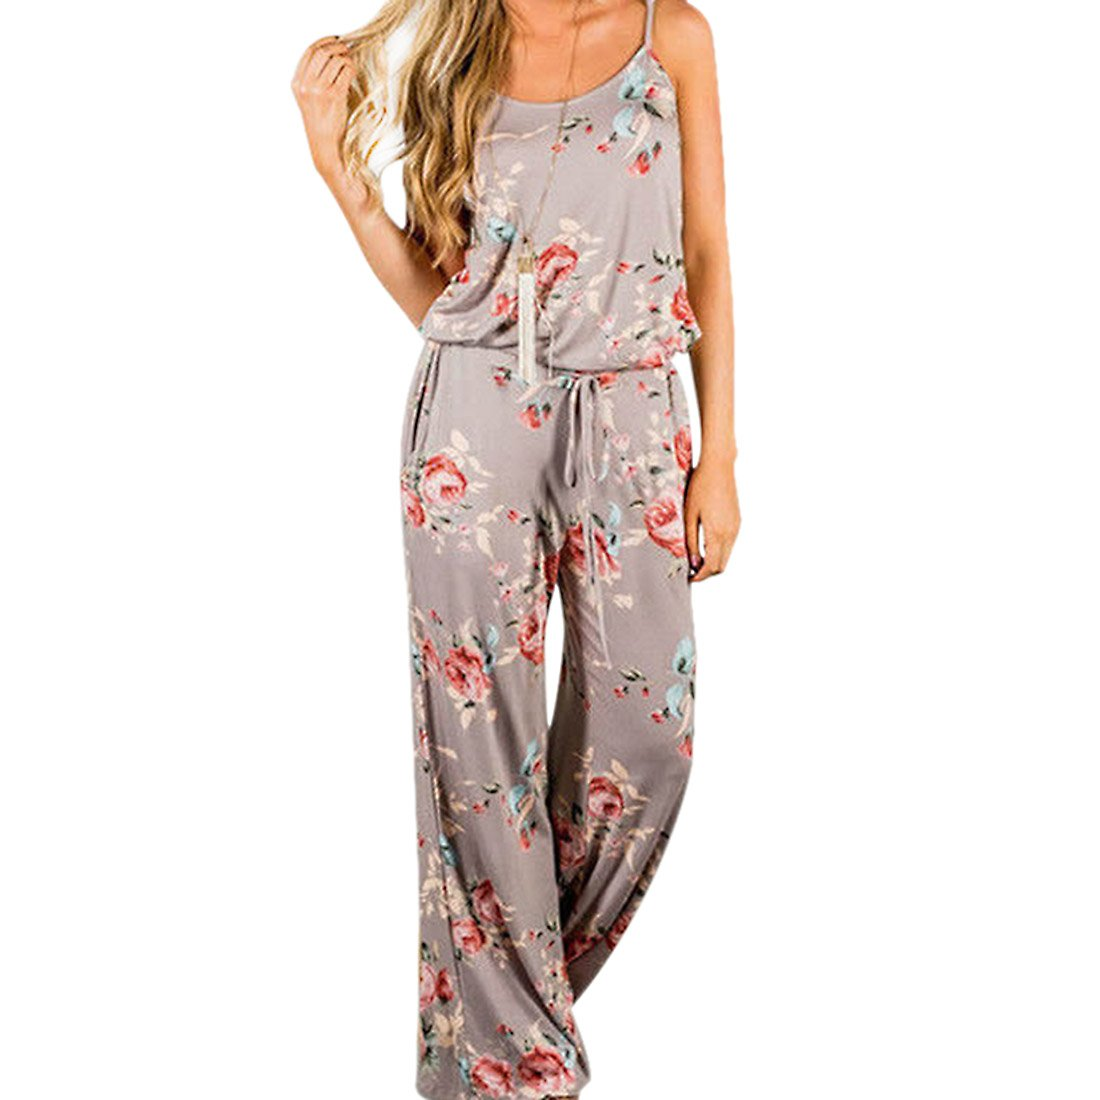 Comeon Women Sexy Sleeveless Spaghetti Strap Waist Tie Floral Print Wide Leg Long Pant Casual Loose Jumpsuit Romper (Khaki,L)